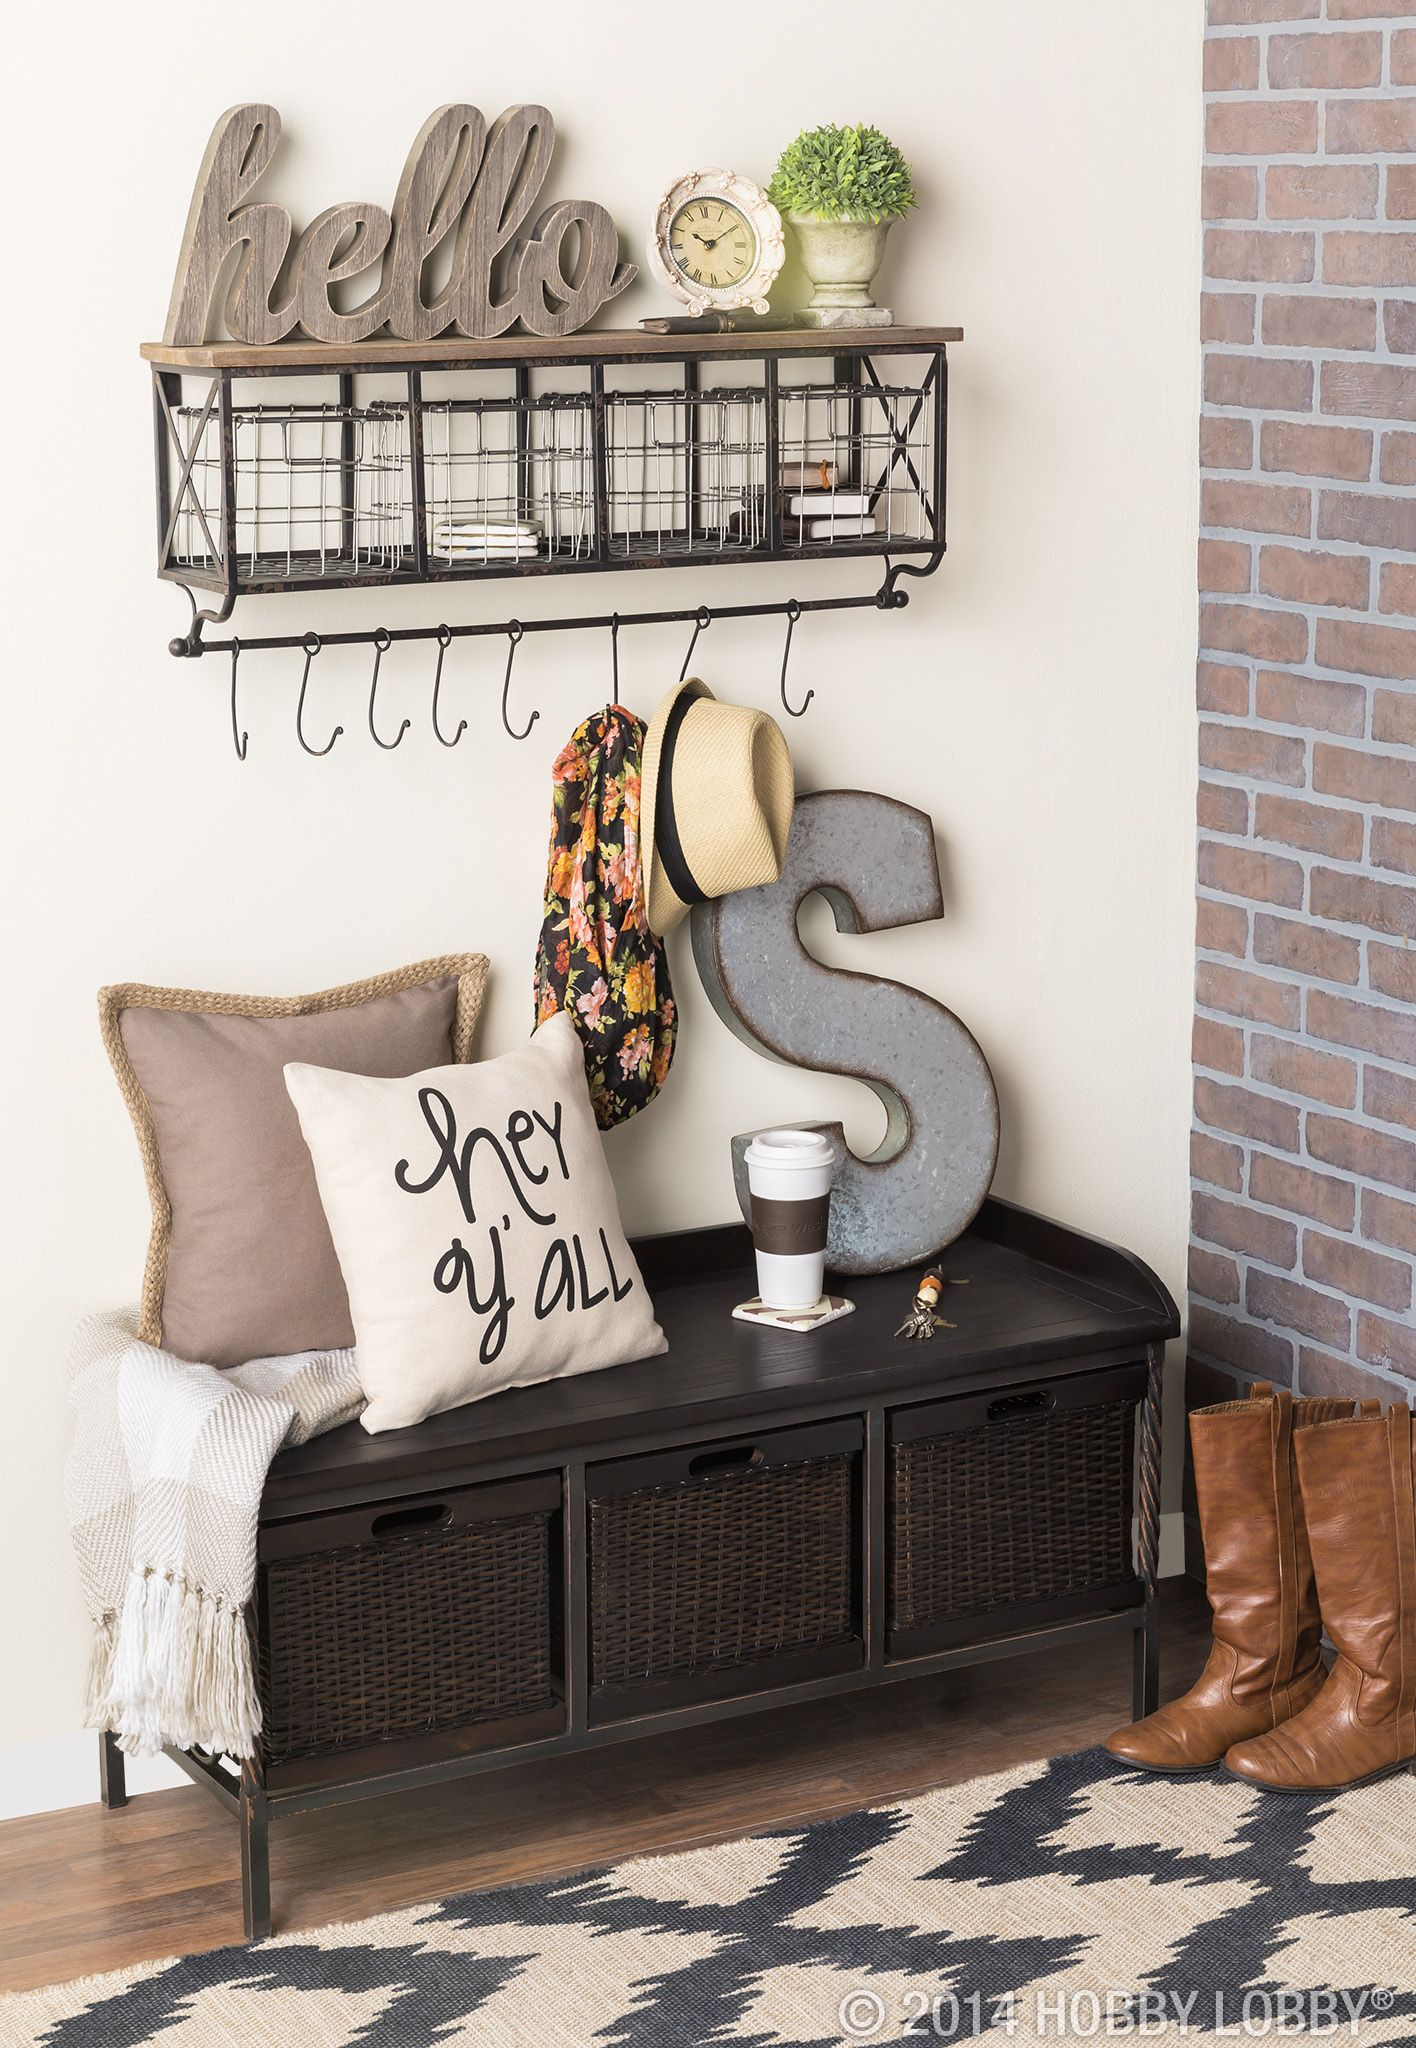 An Inviting Entryway Shop Hobby Lobby Home Decor F